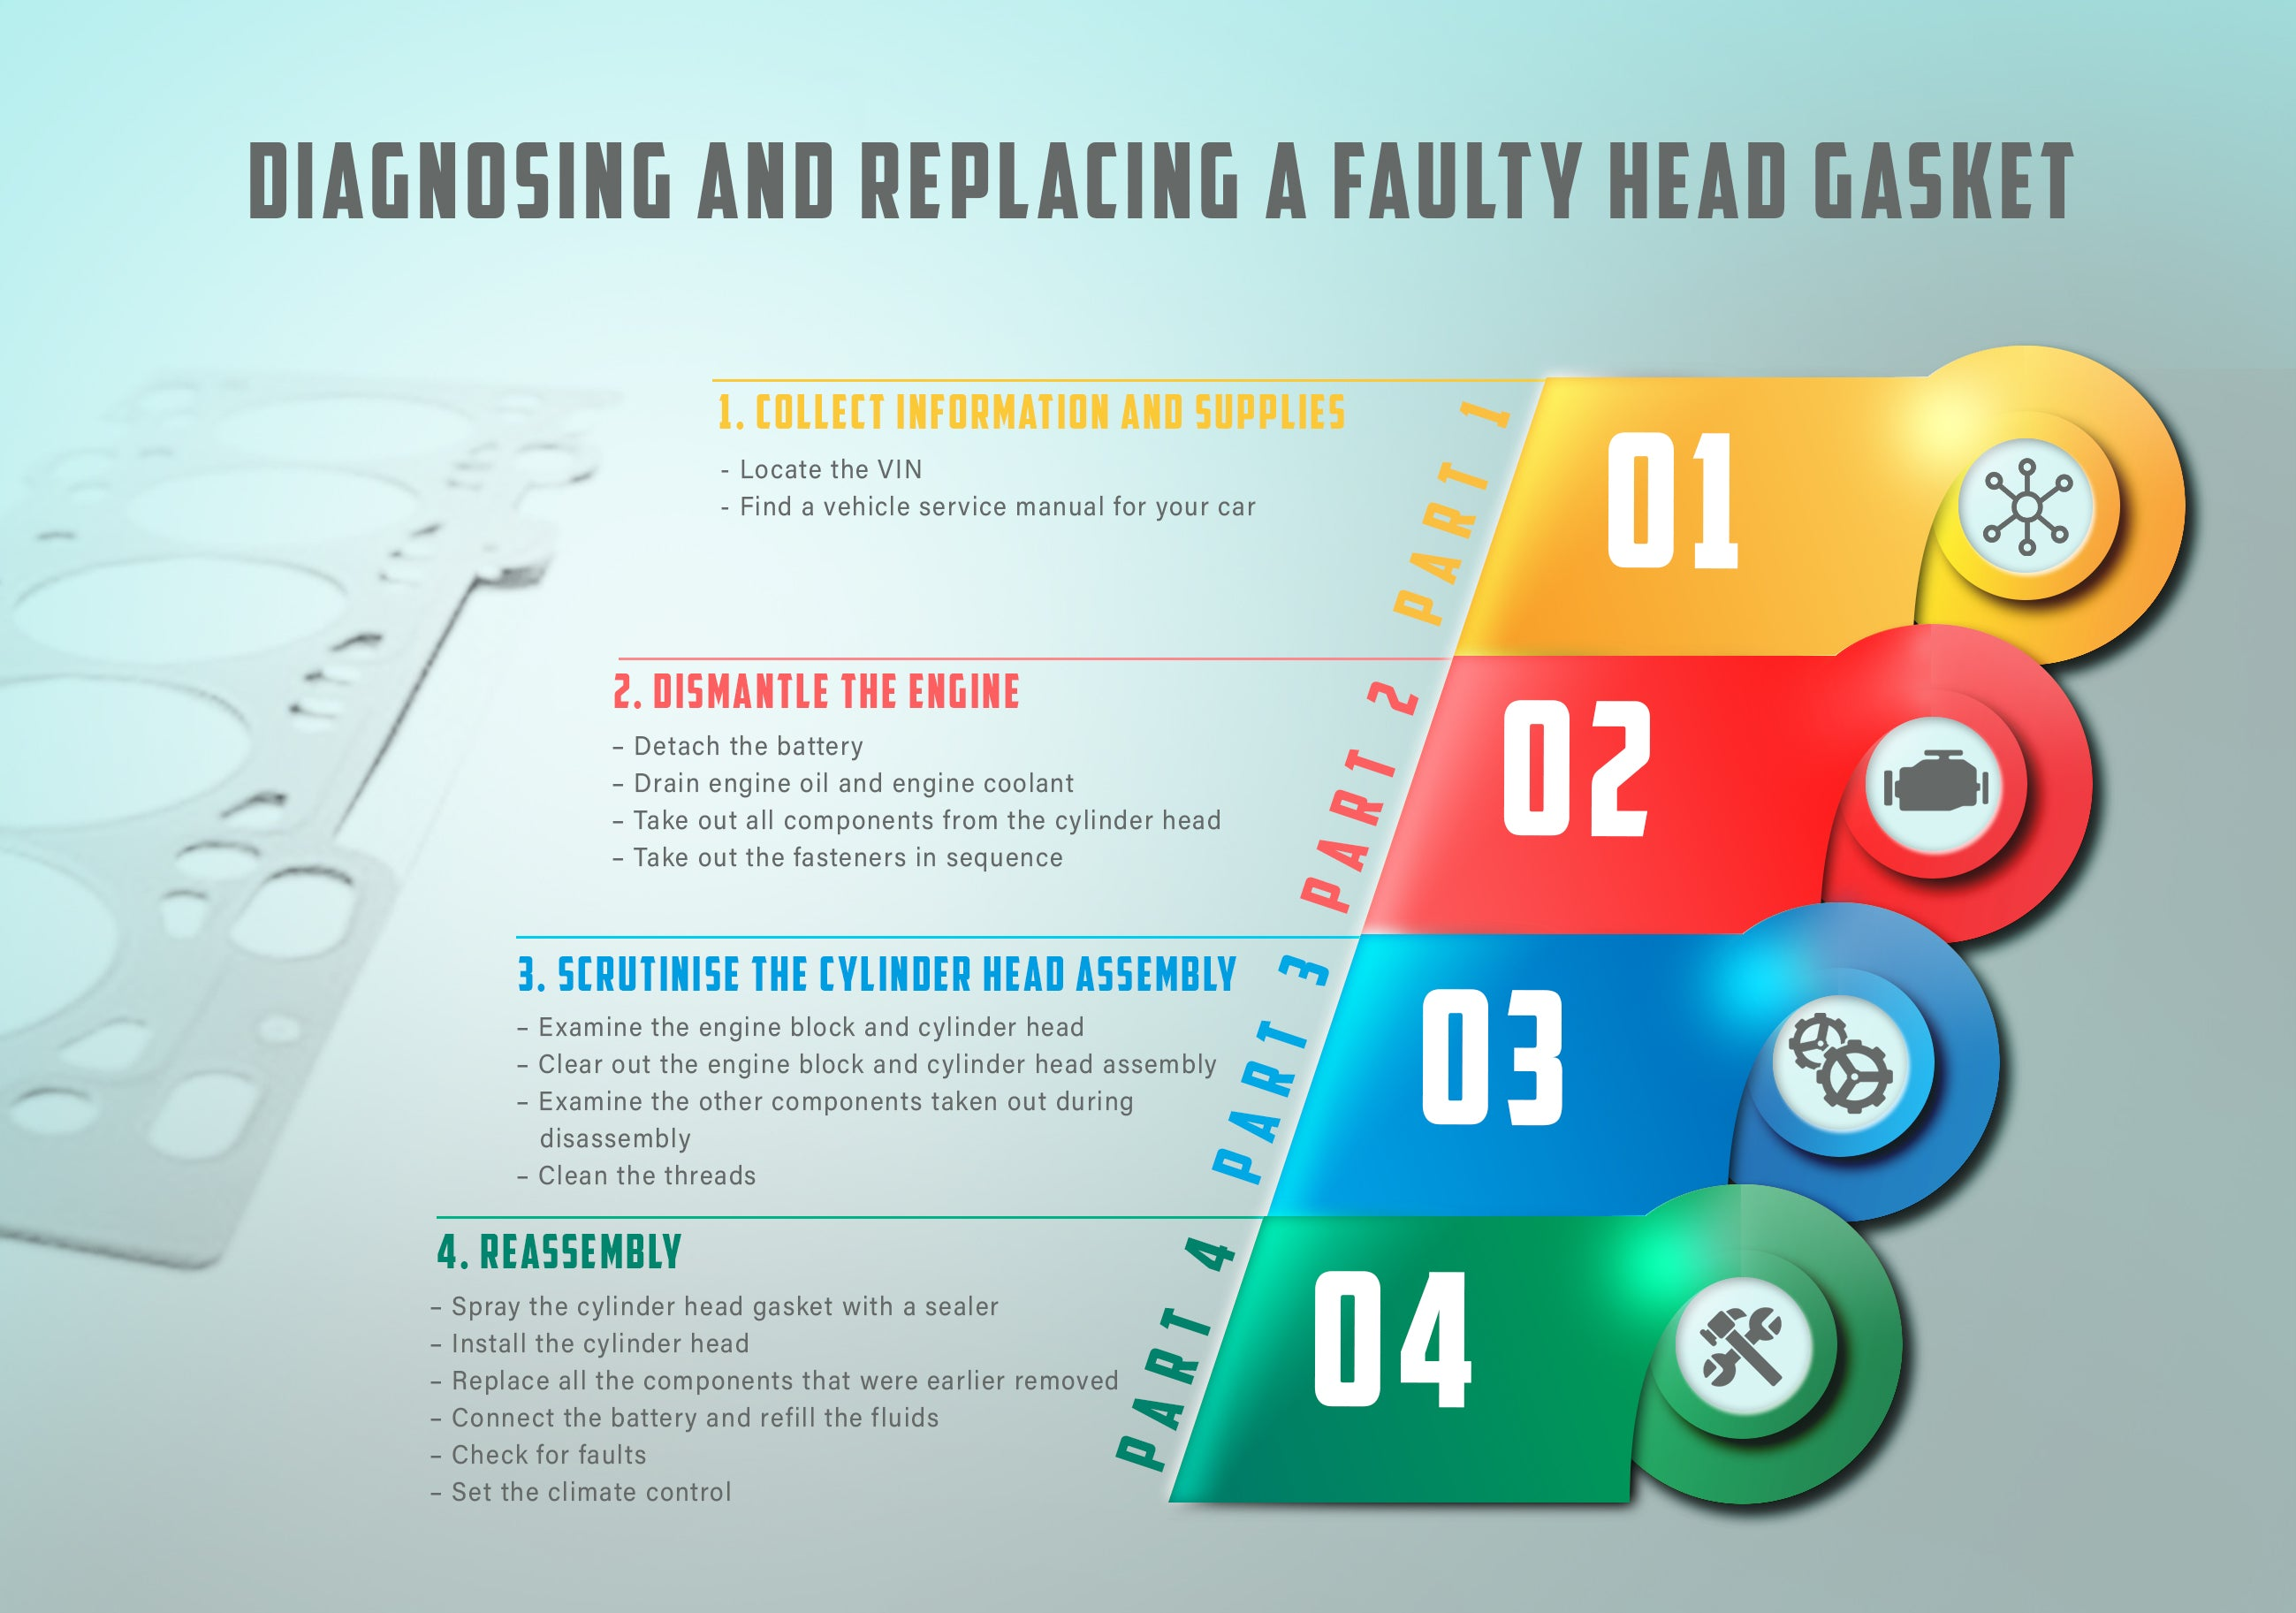 Diagnosing and replacing faulty head gasket infograph